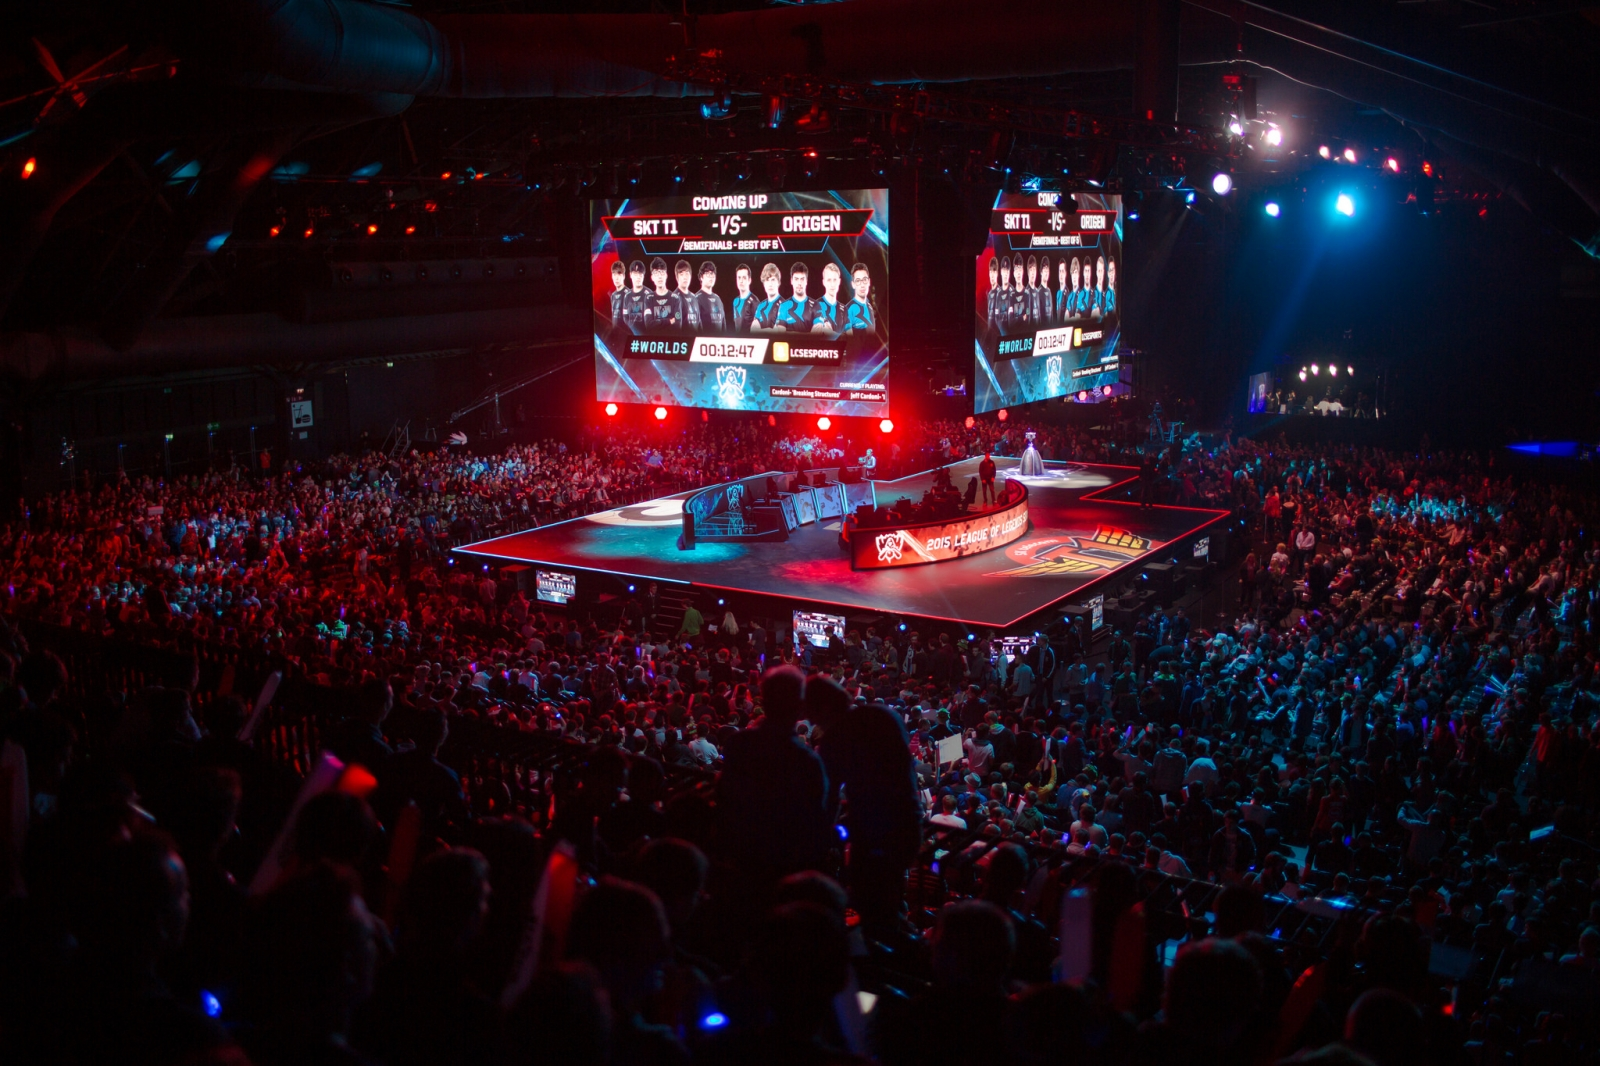 Riot Games has sold out arenas throughout Europe like Brussels Expo for its eSports tournament.